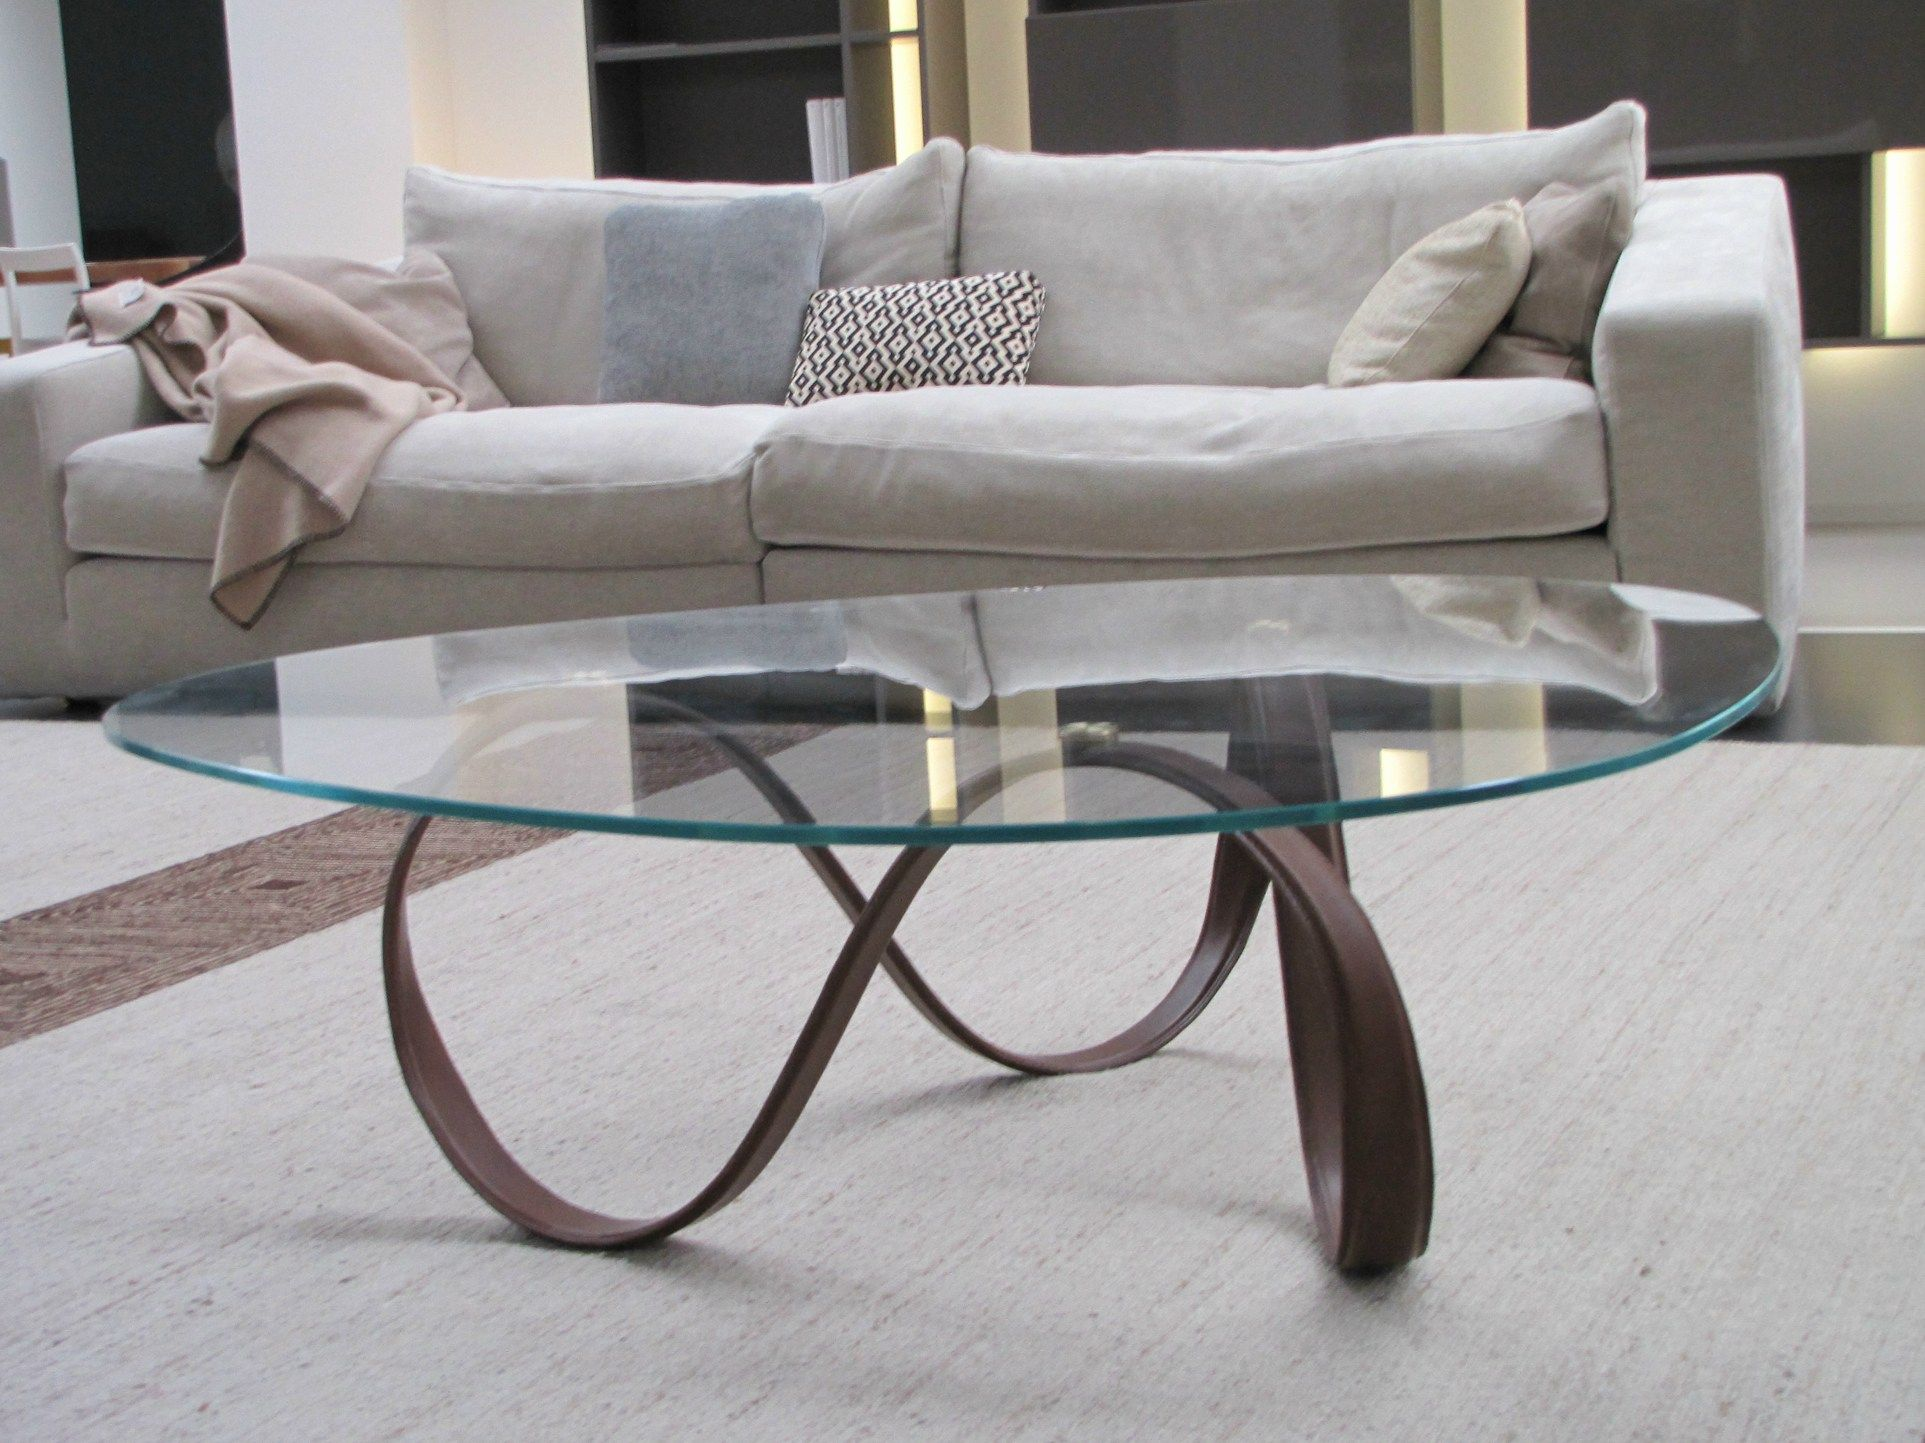 Charmant A Glass Coffee Table Inspired By The Latest Contemporary Trends